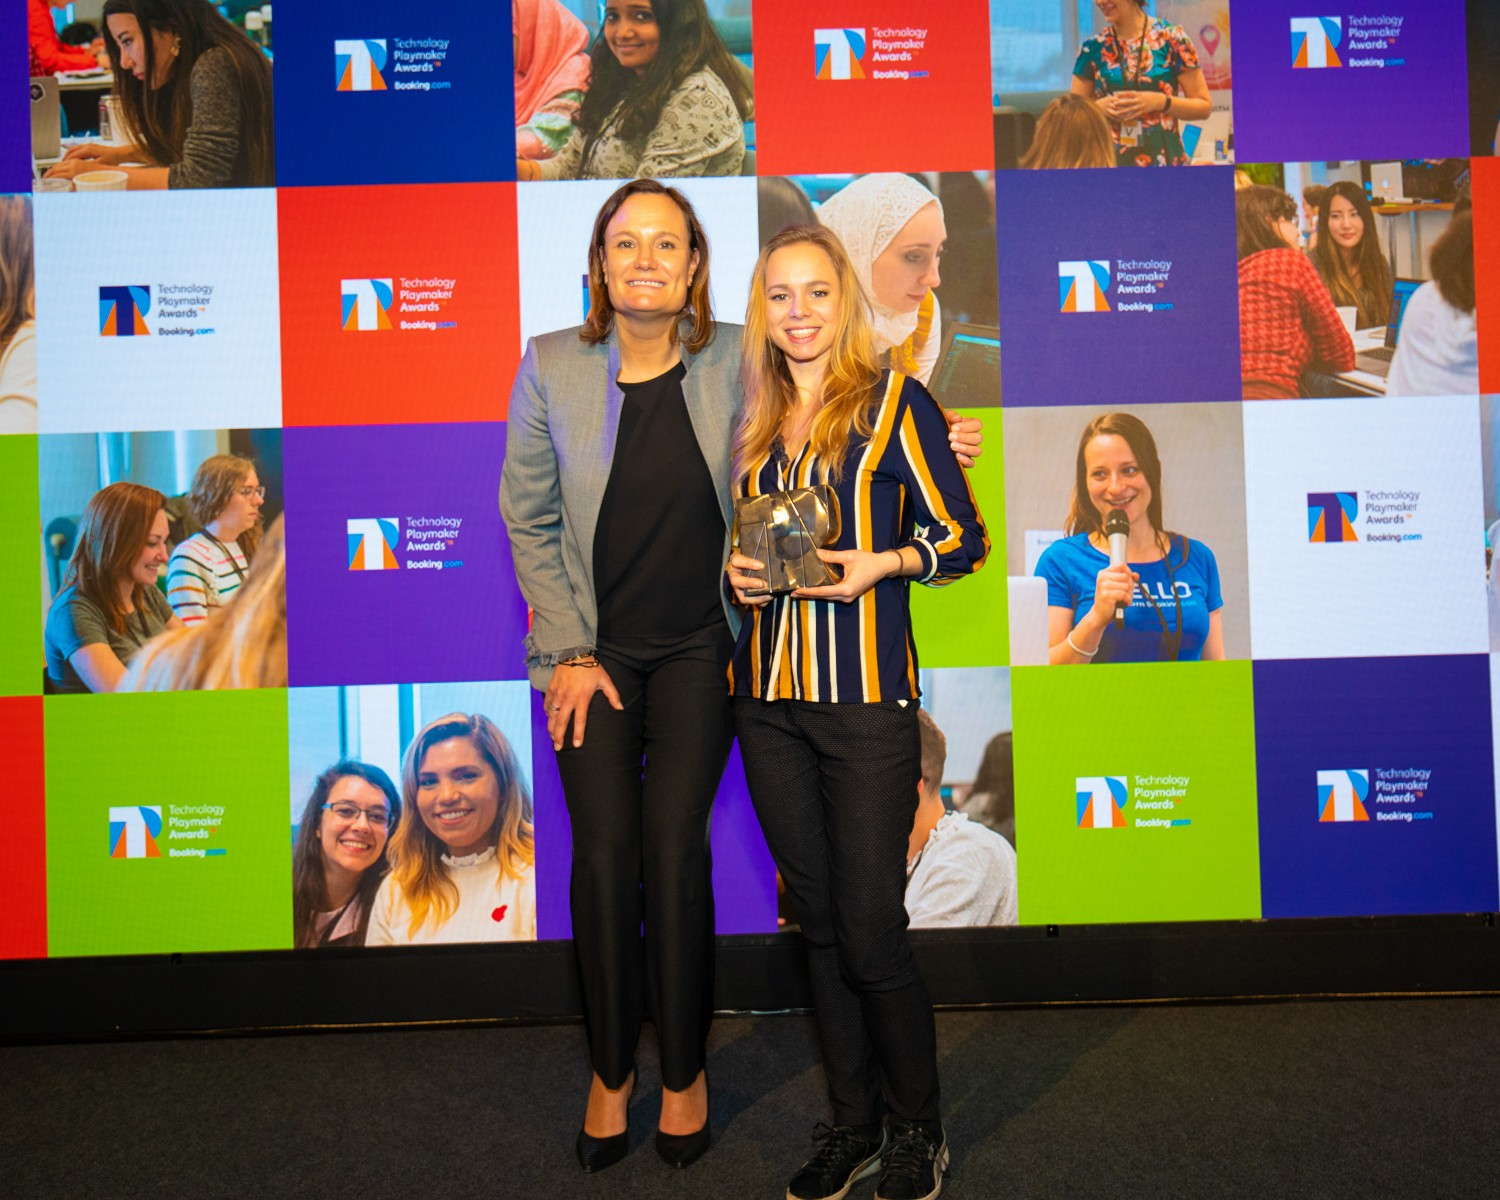 Tech Innovator winner – Sophie Hombert with Gillian